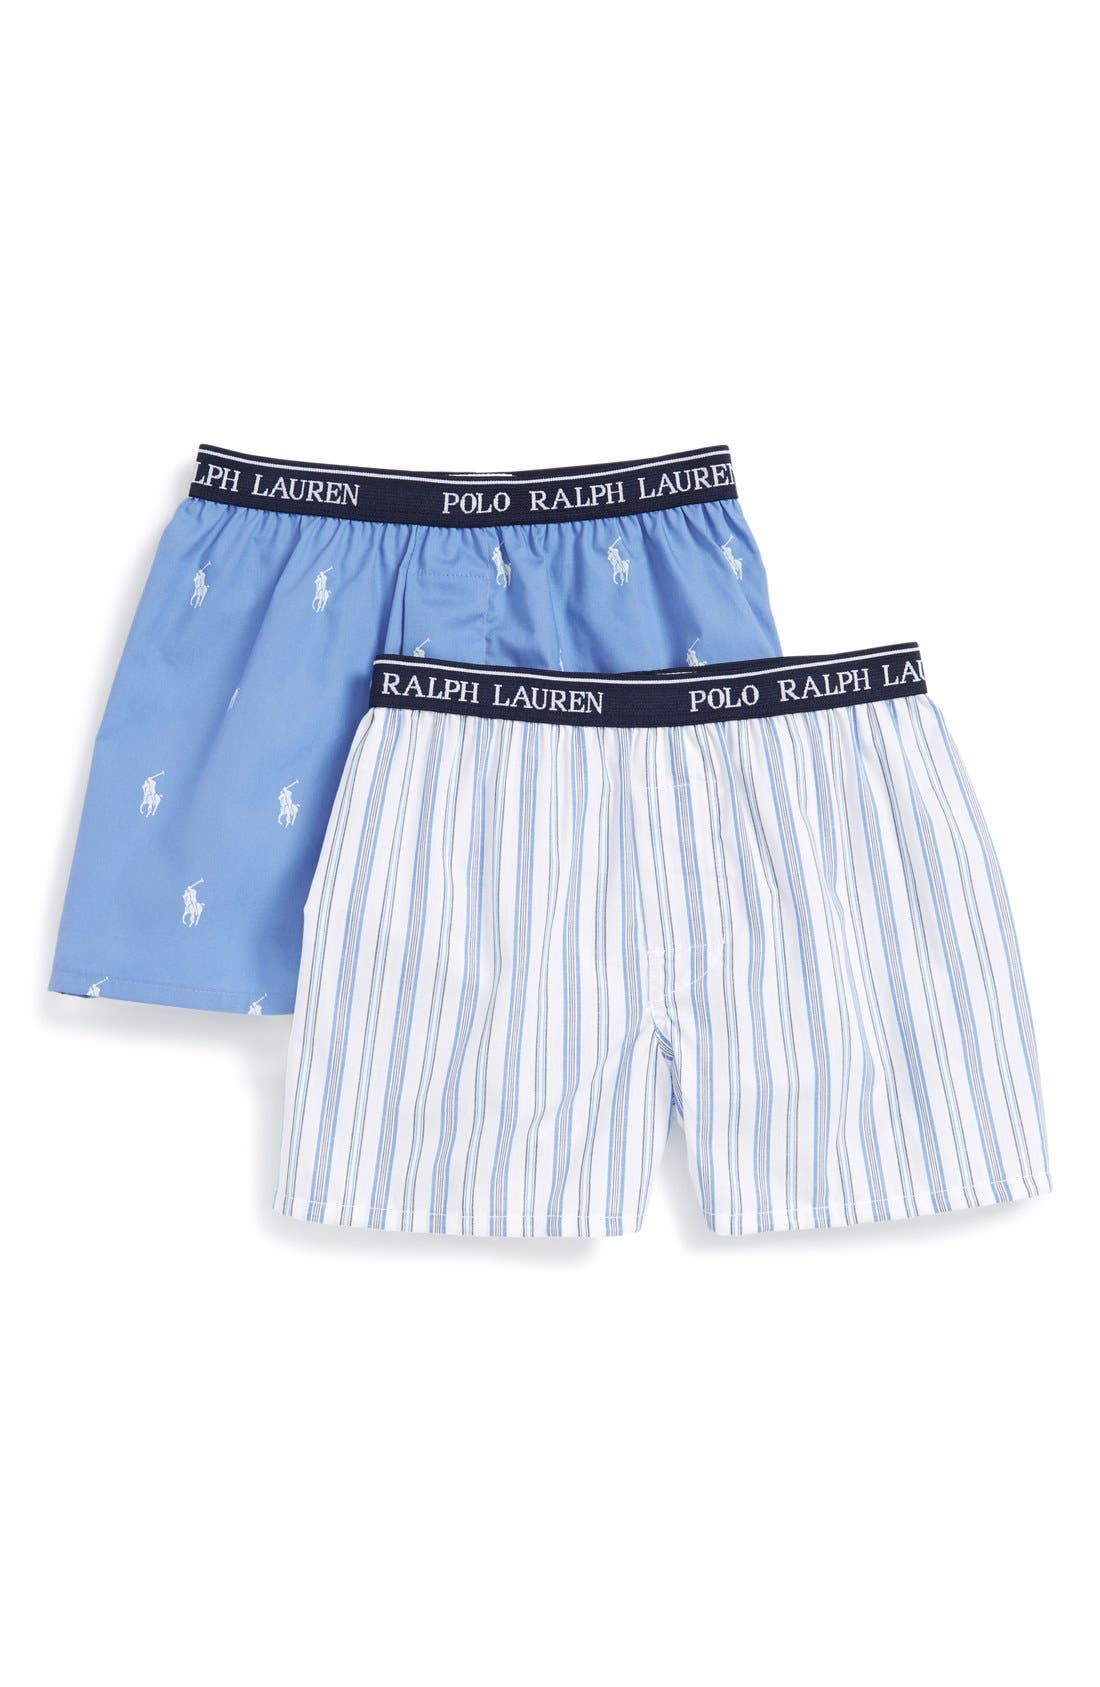 Main Image - Polo Ralph Lauren Woven Boxers (2-Pack) (Big Boys)